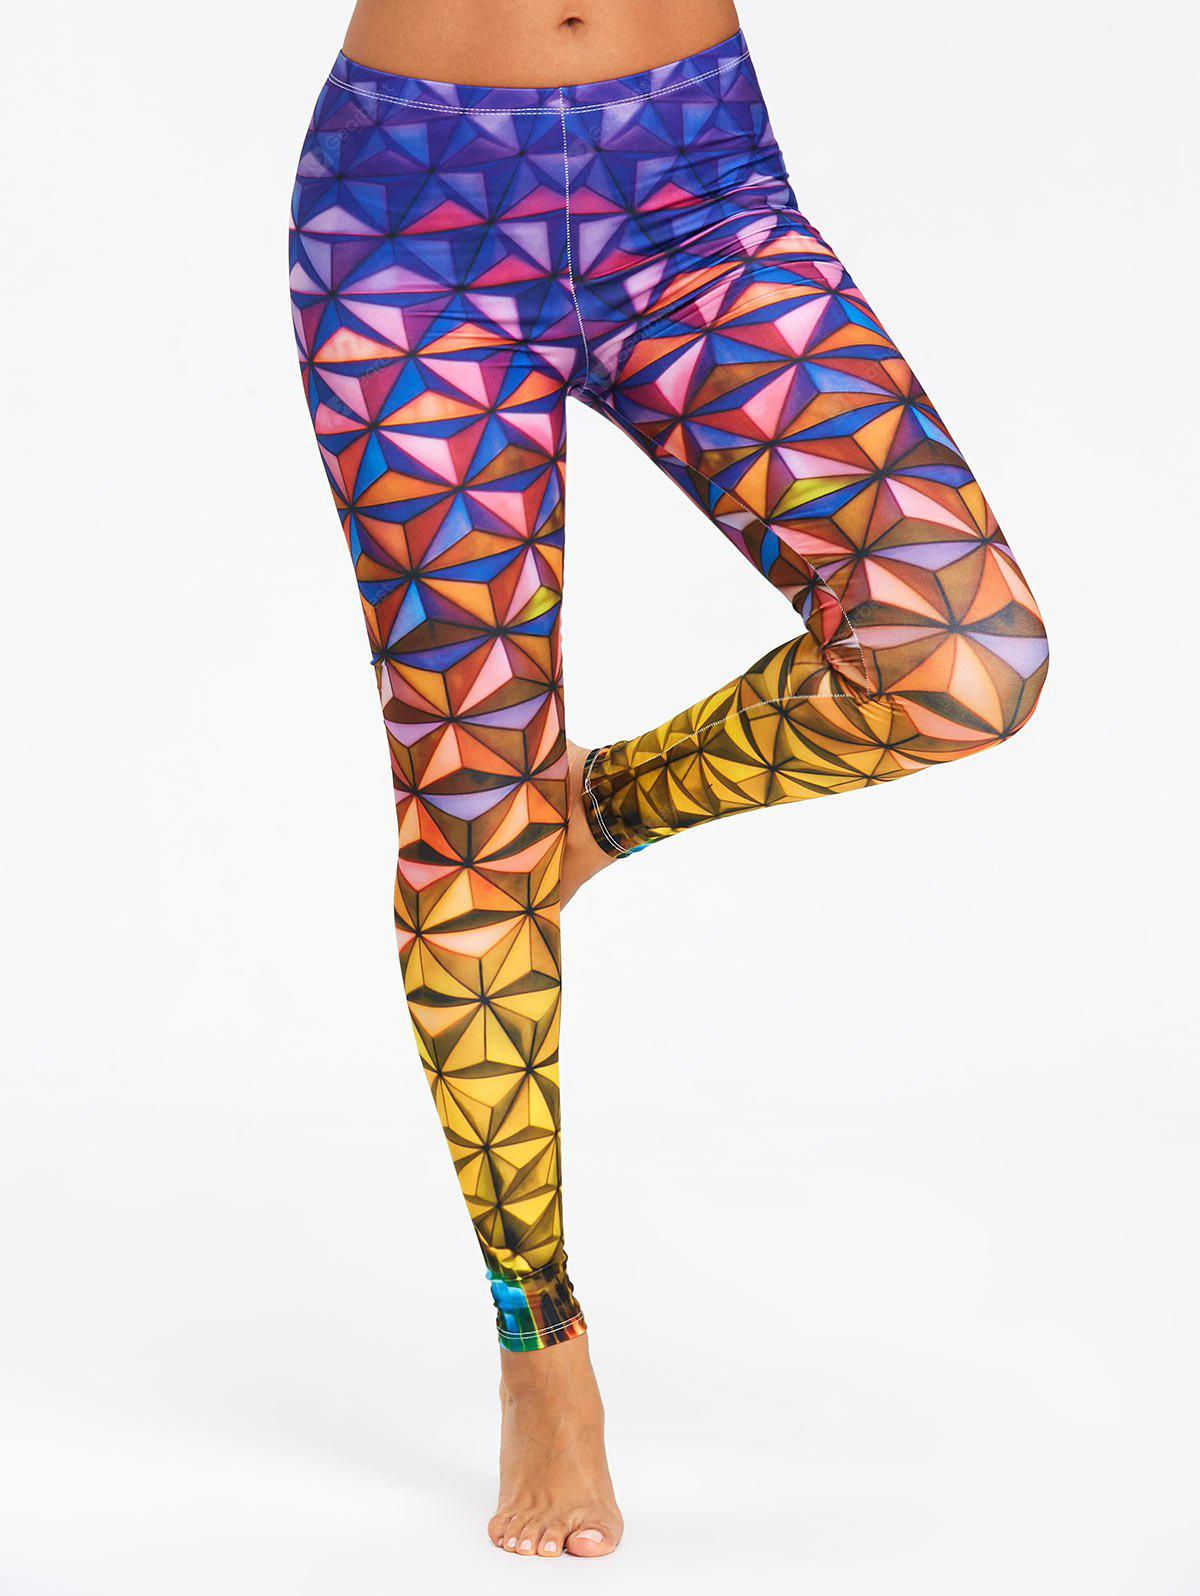 Geometric 3D Print Ombre Leggings